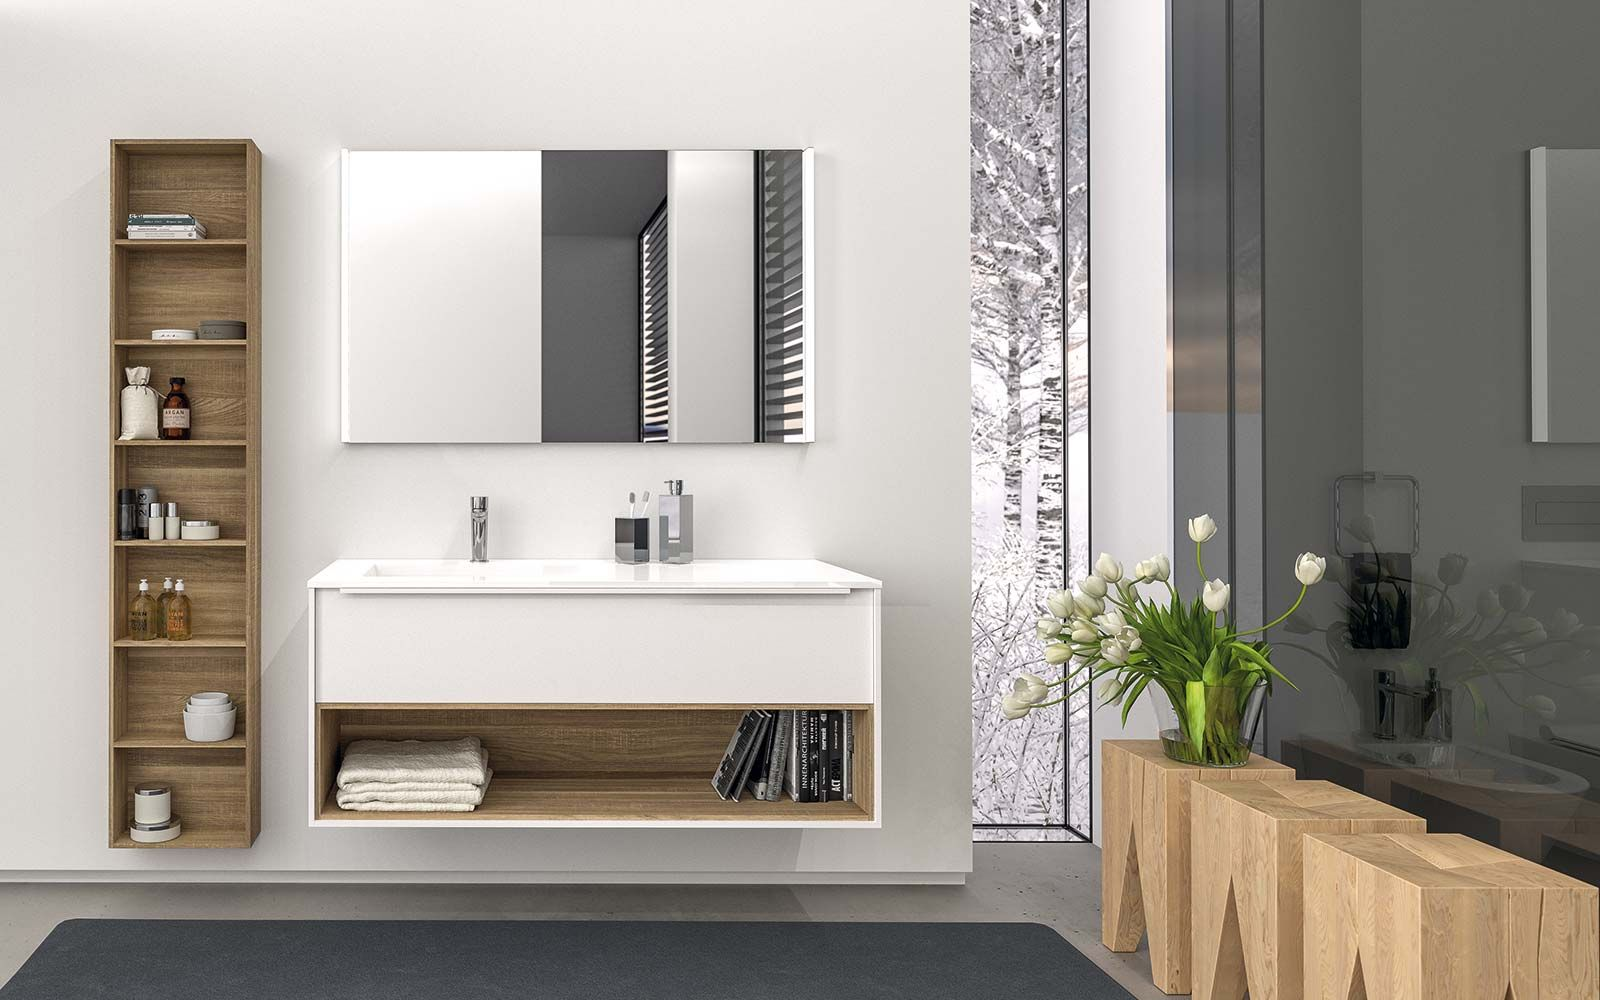 Berloni Bagno Bathroom Furnishings